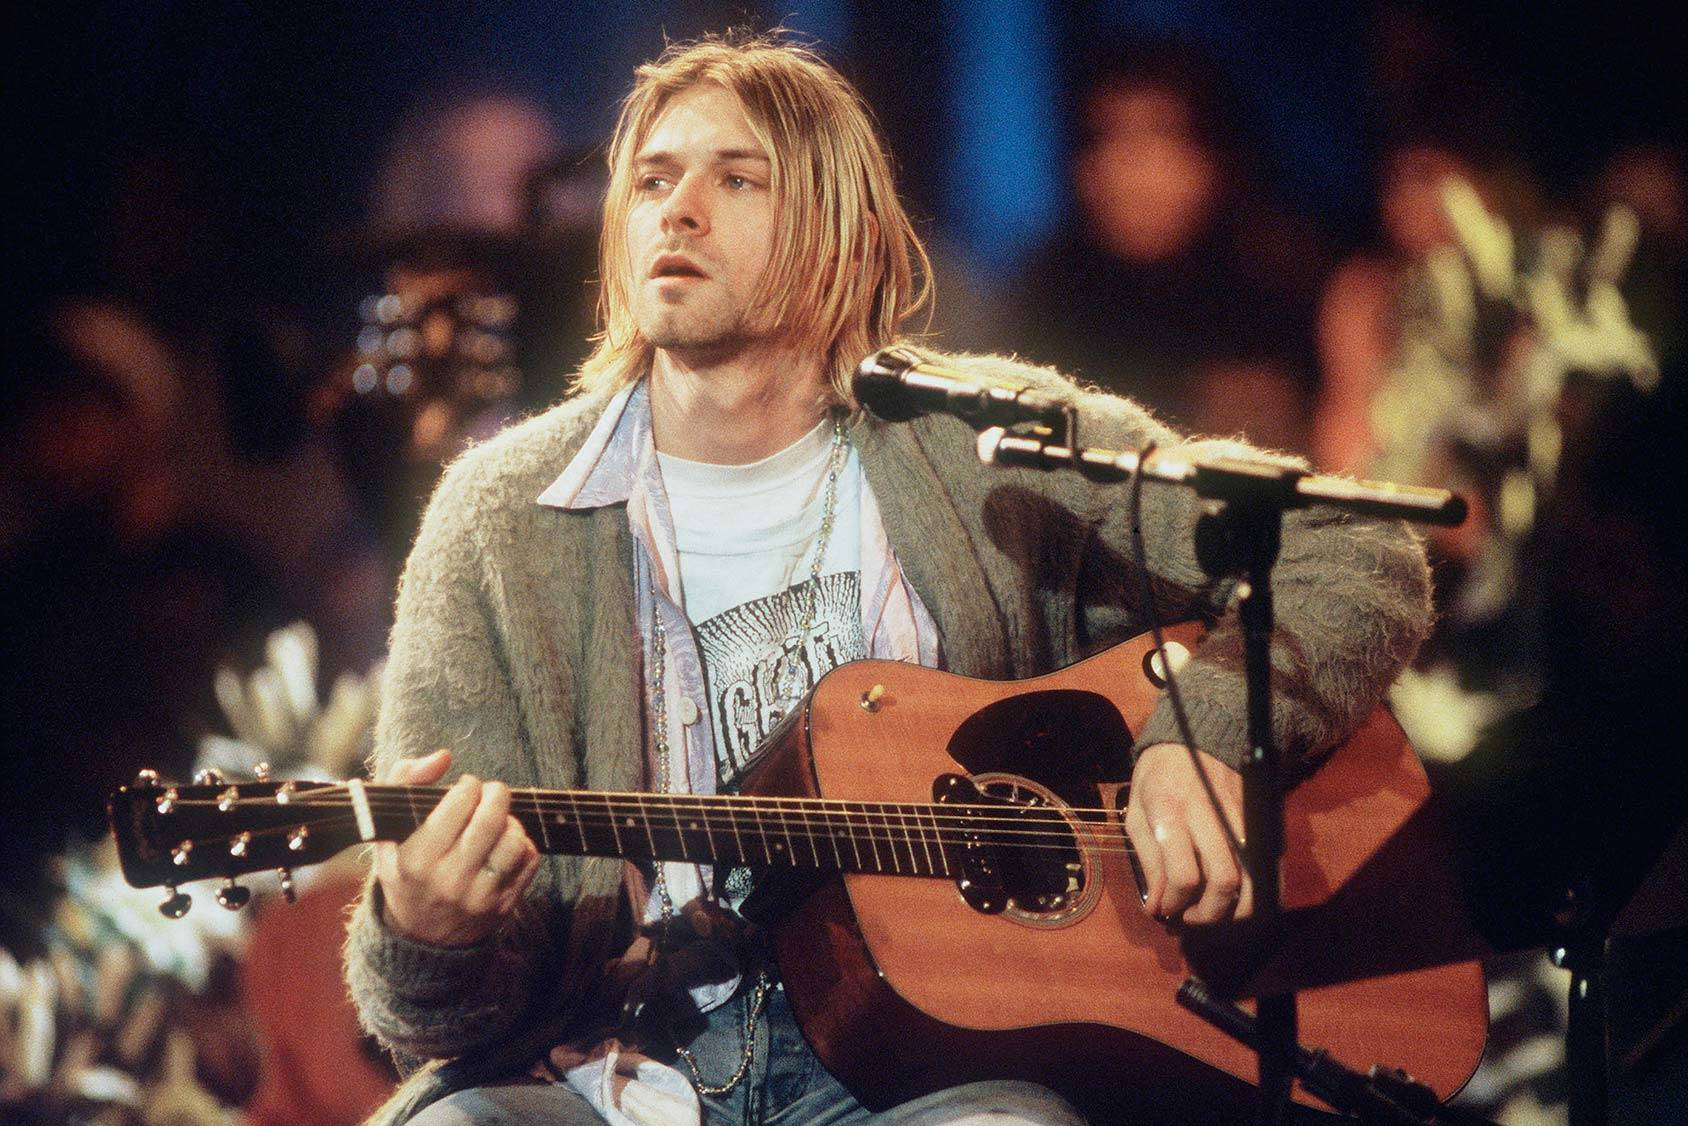 The Nirvana frontman and style icon Kurt Cobain, Getty Images.